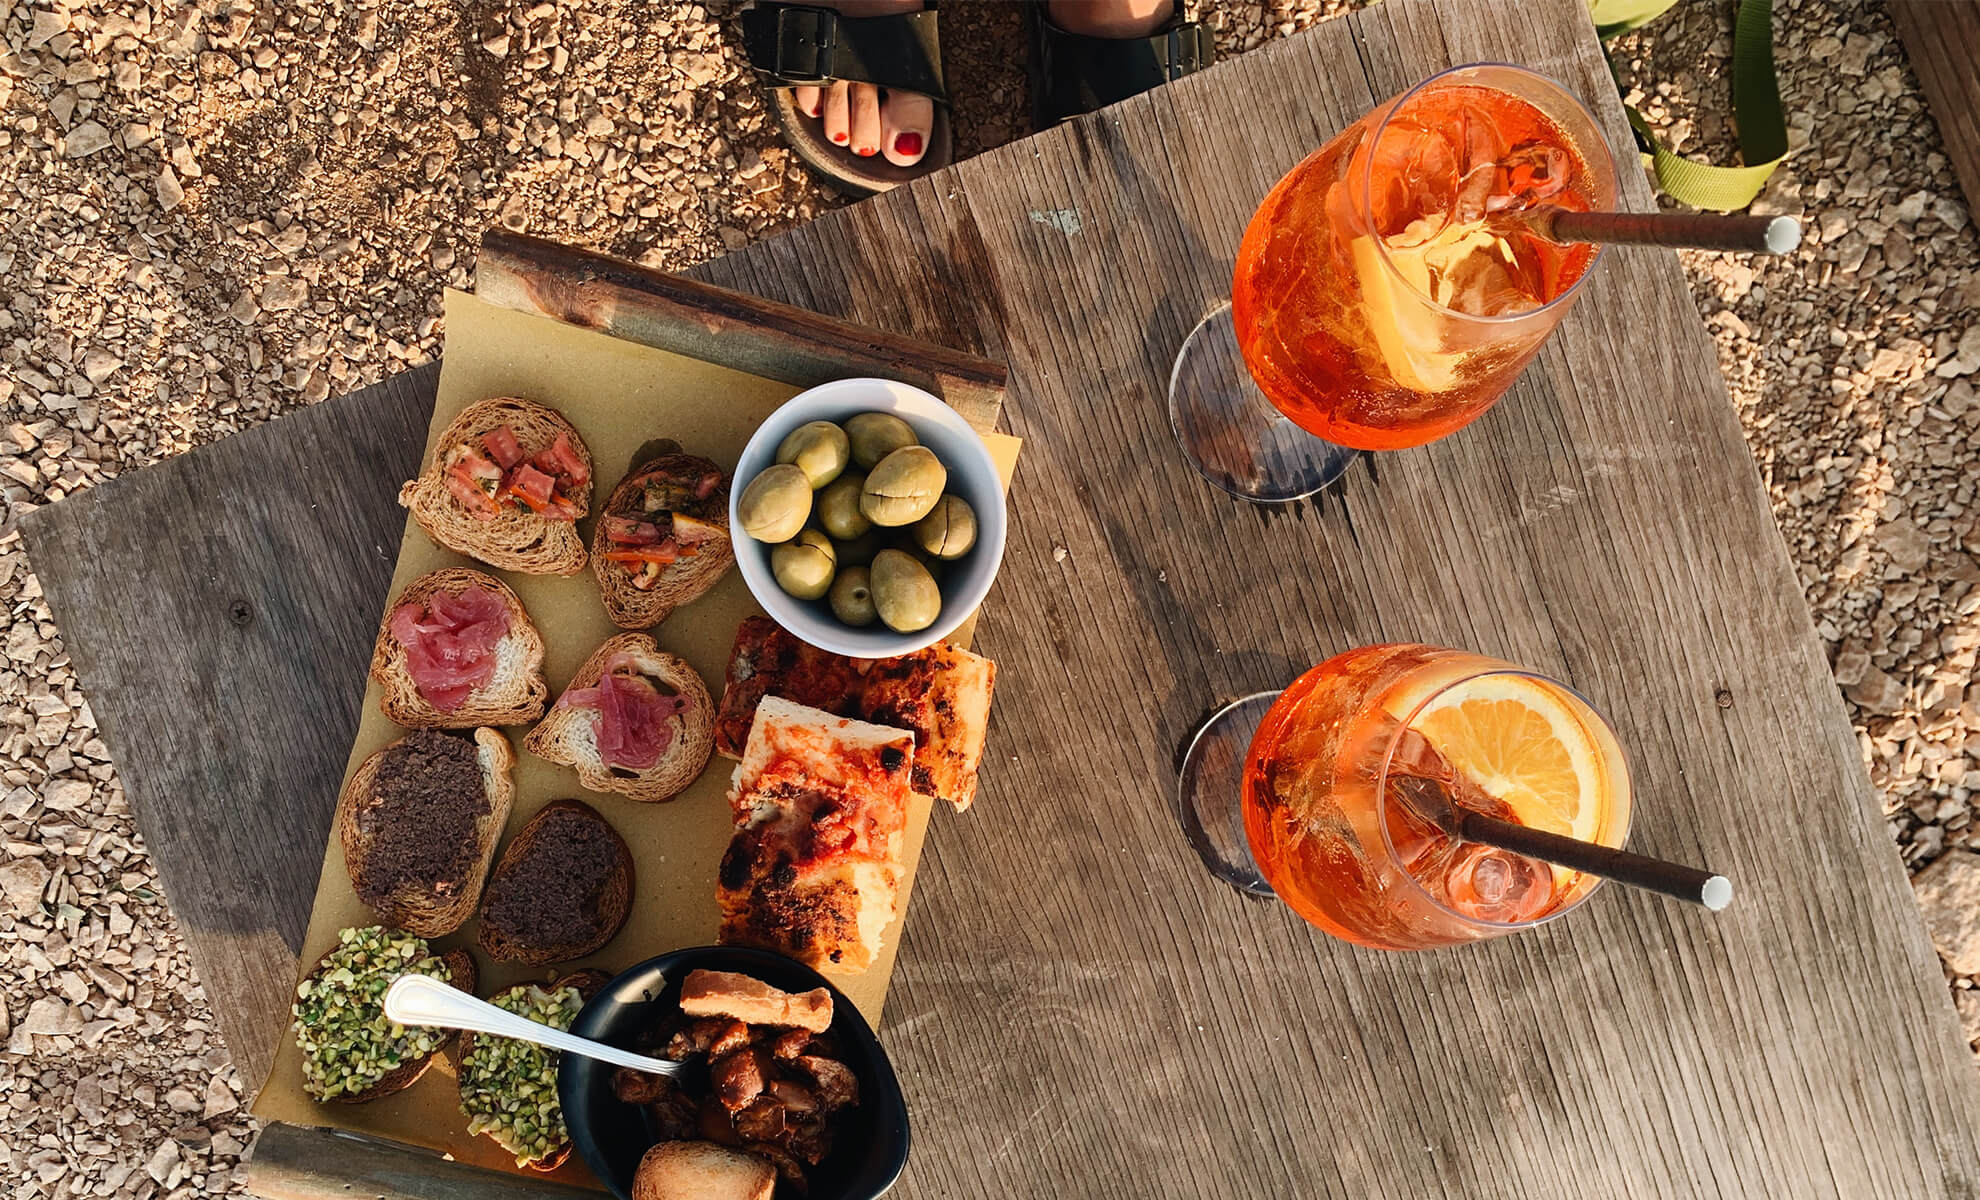 Aperitif and snack